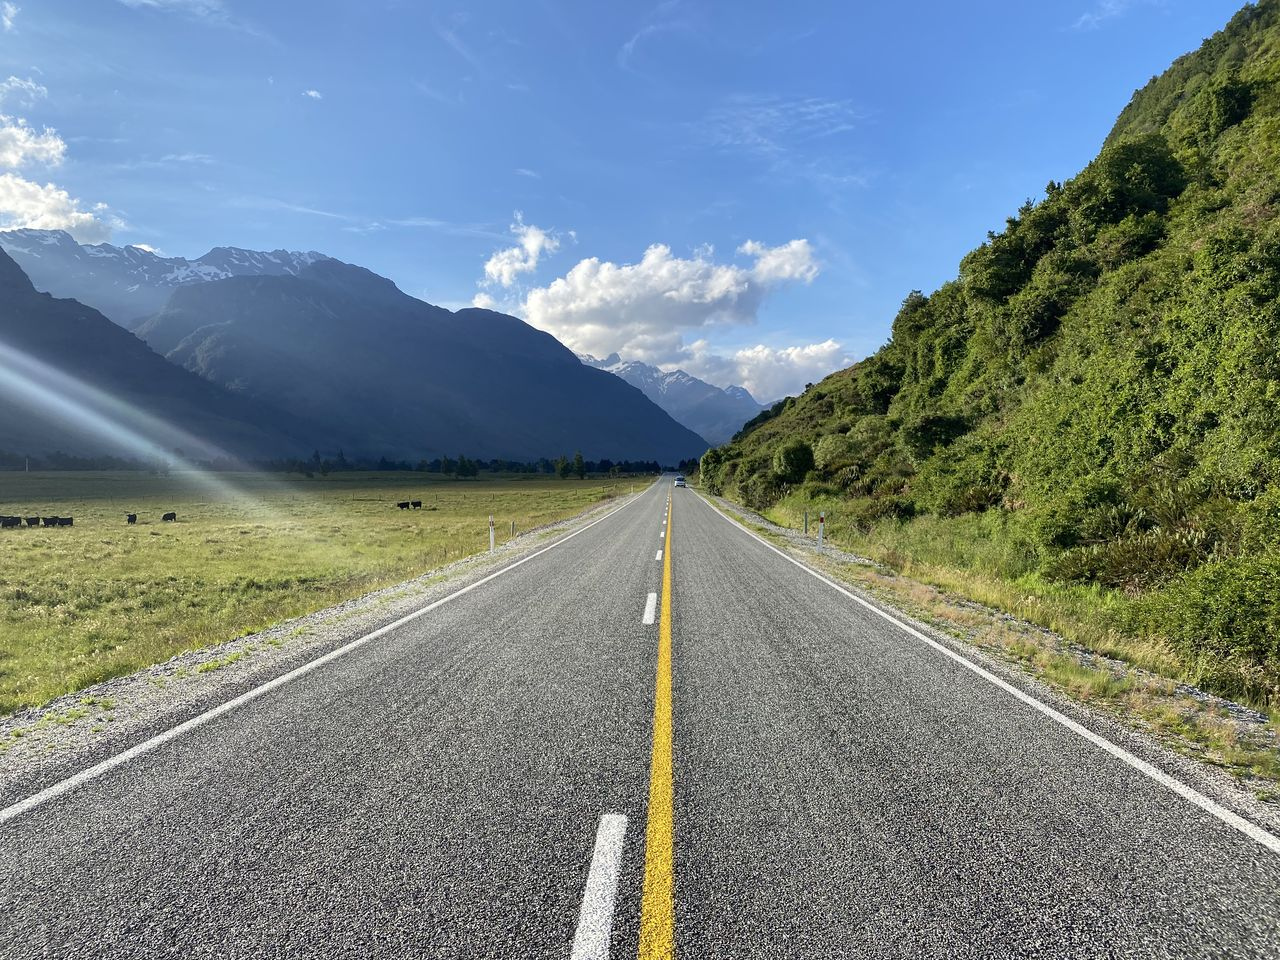 road, transportation, mountain, sky, marking, road marking, the way forward, direction, symbol, sign, diminishing perspective, beauty in nature, nature, cloud - sky, mountain range, no people, non-urban scene, tranquil scene, empty road, tranquility, outdoors, dividing line